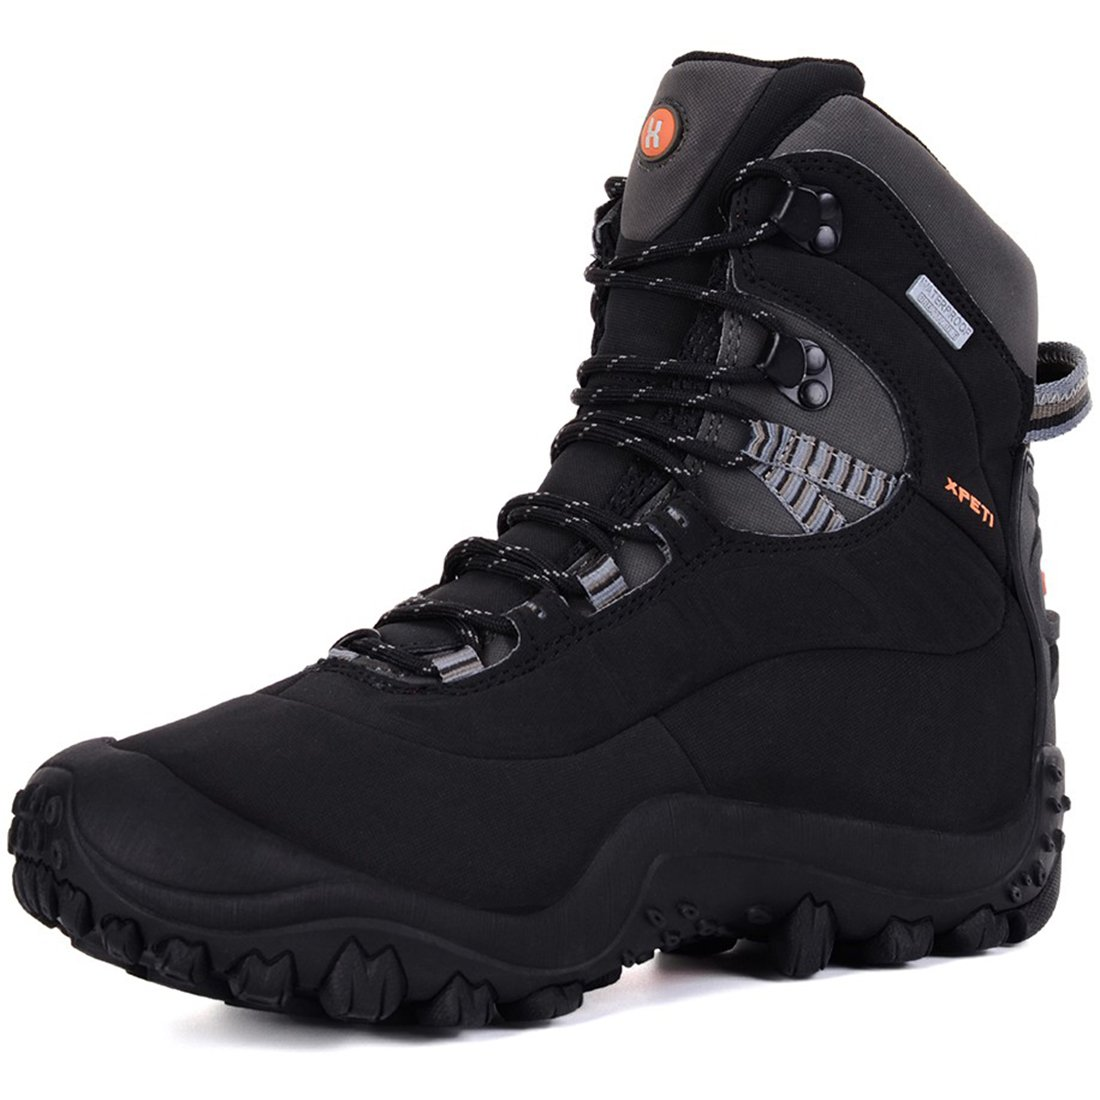 42f80954b837a XPETI Thermador Men's Waterproof Hiking Boots